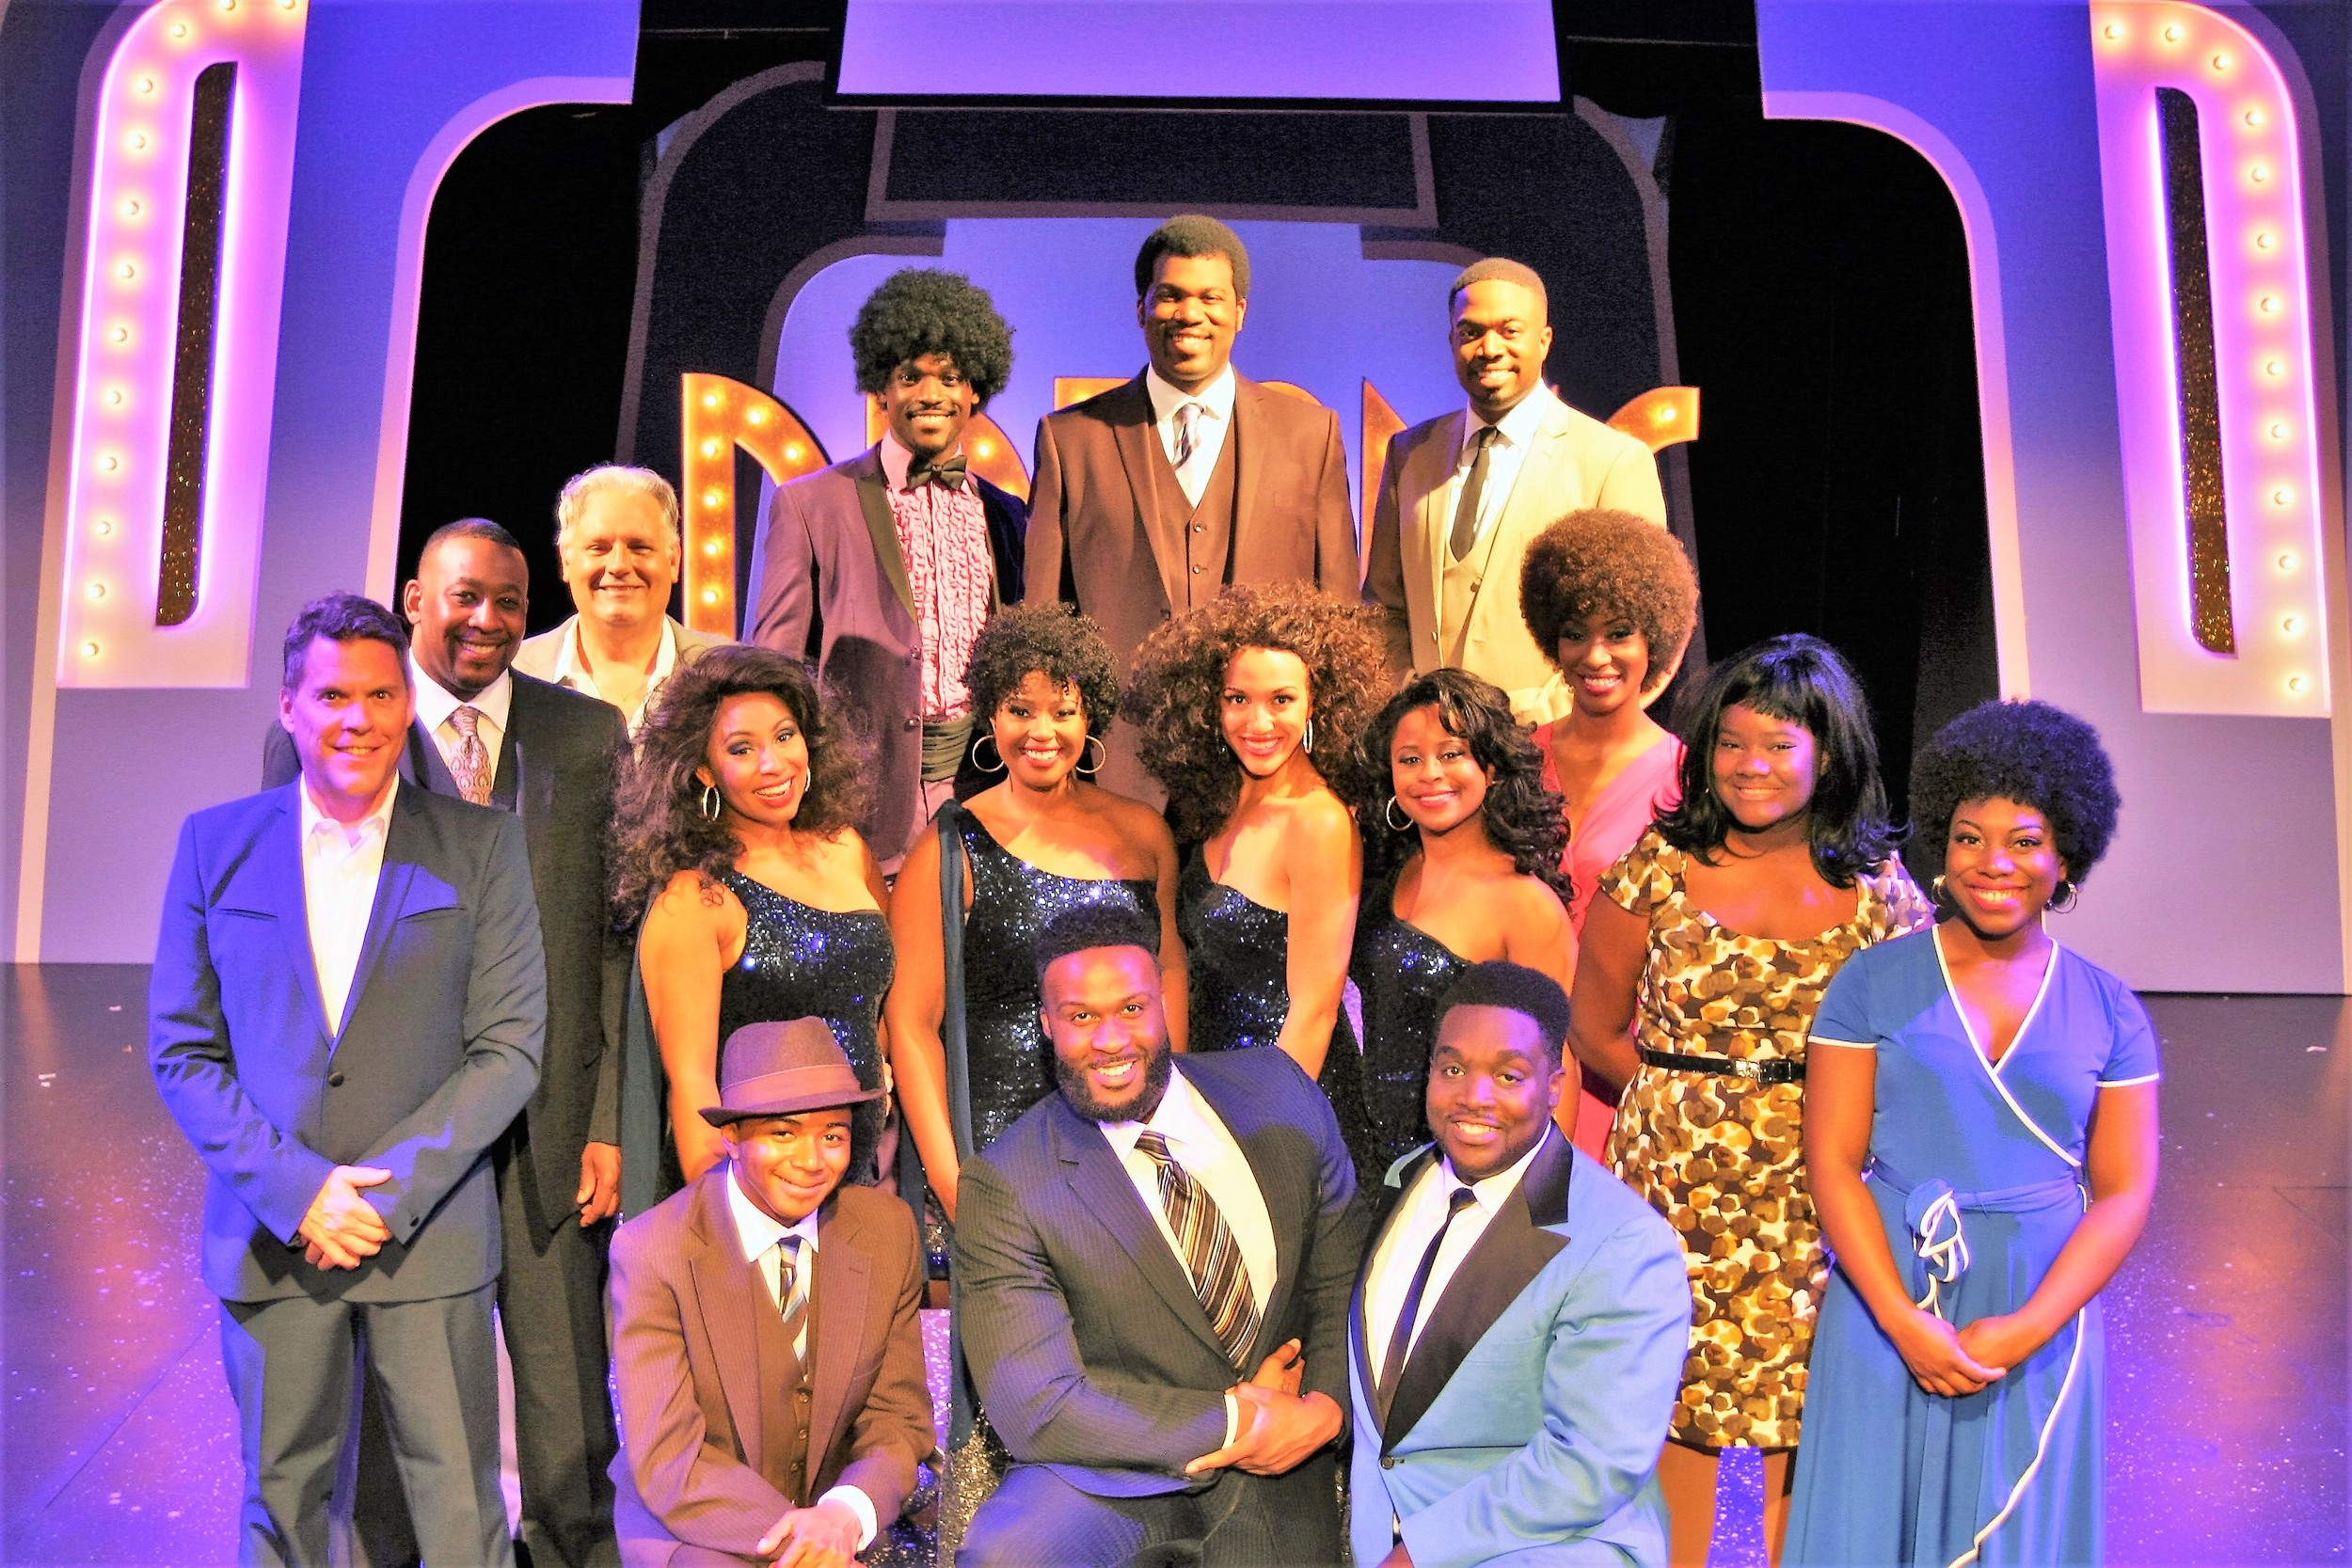 """Dreamgirls"" runs through May 21 at the Alhambra Theatre and Dining. For tickets or more information, visit www.alhambrajax.com."